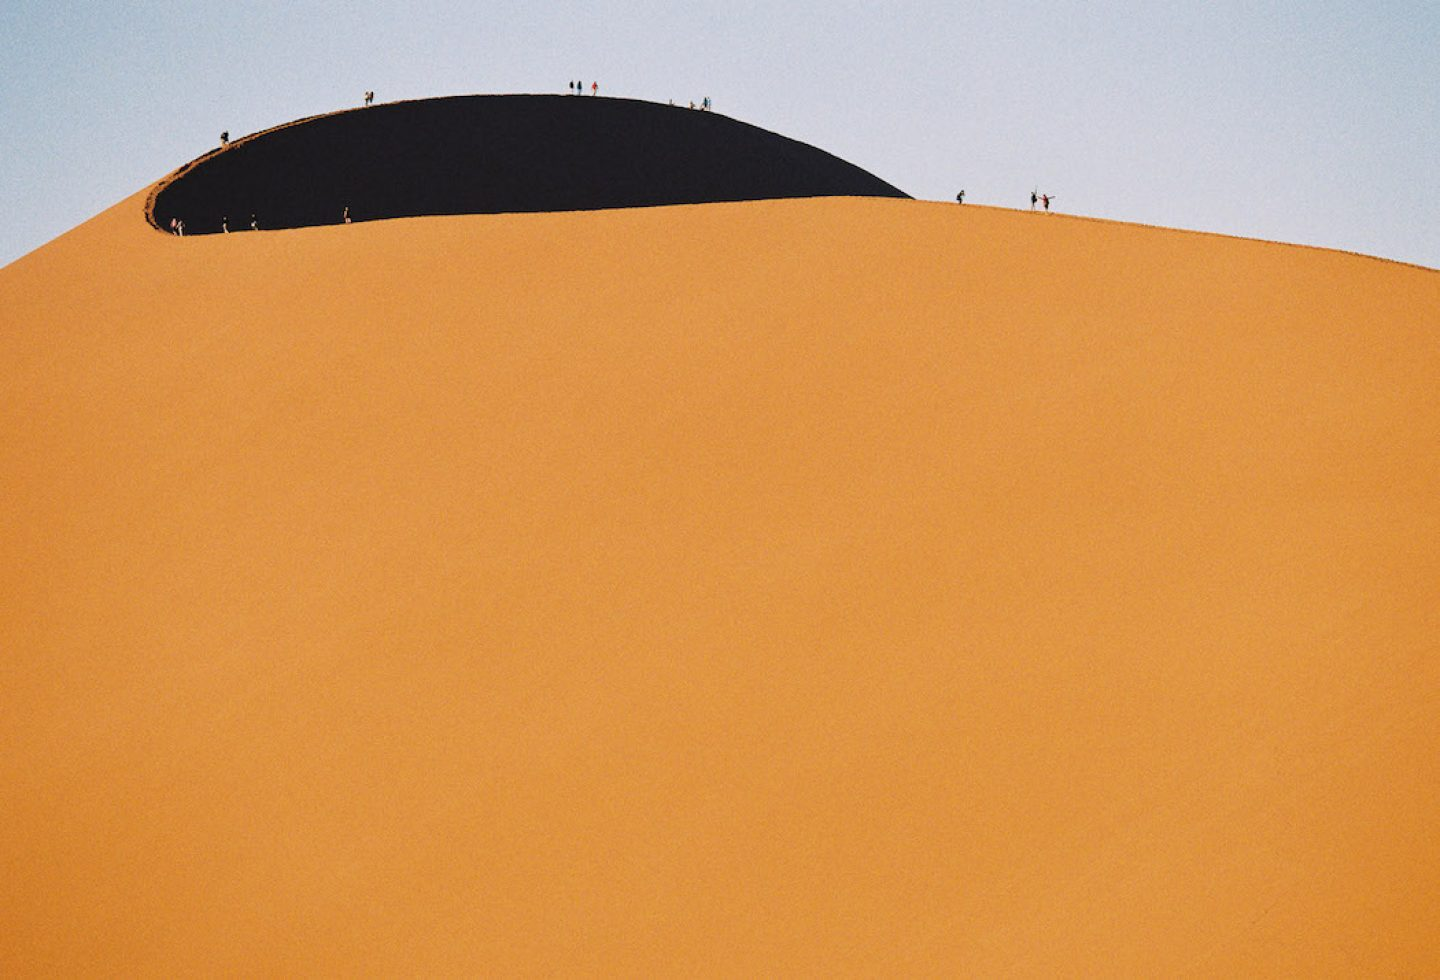 stefanhaehnel_namibia_preview-60